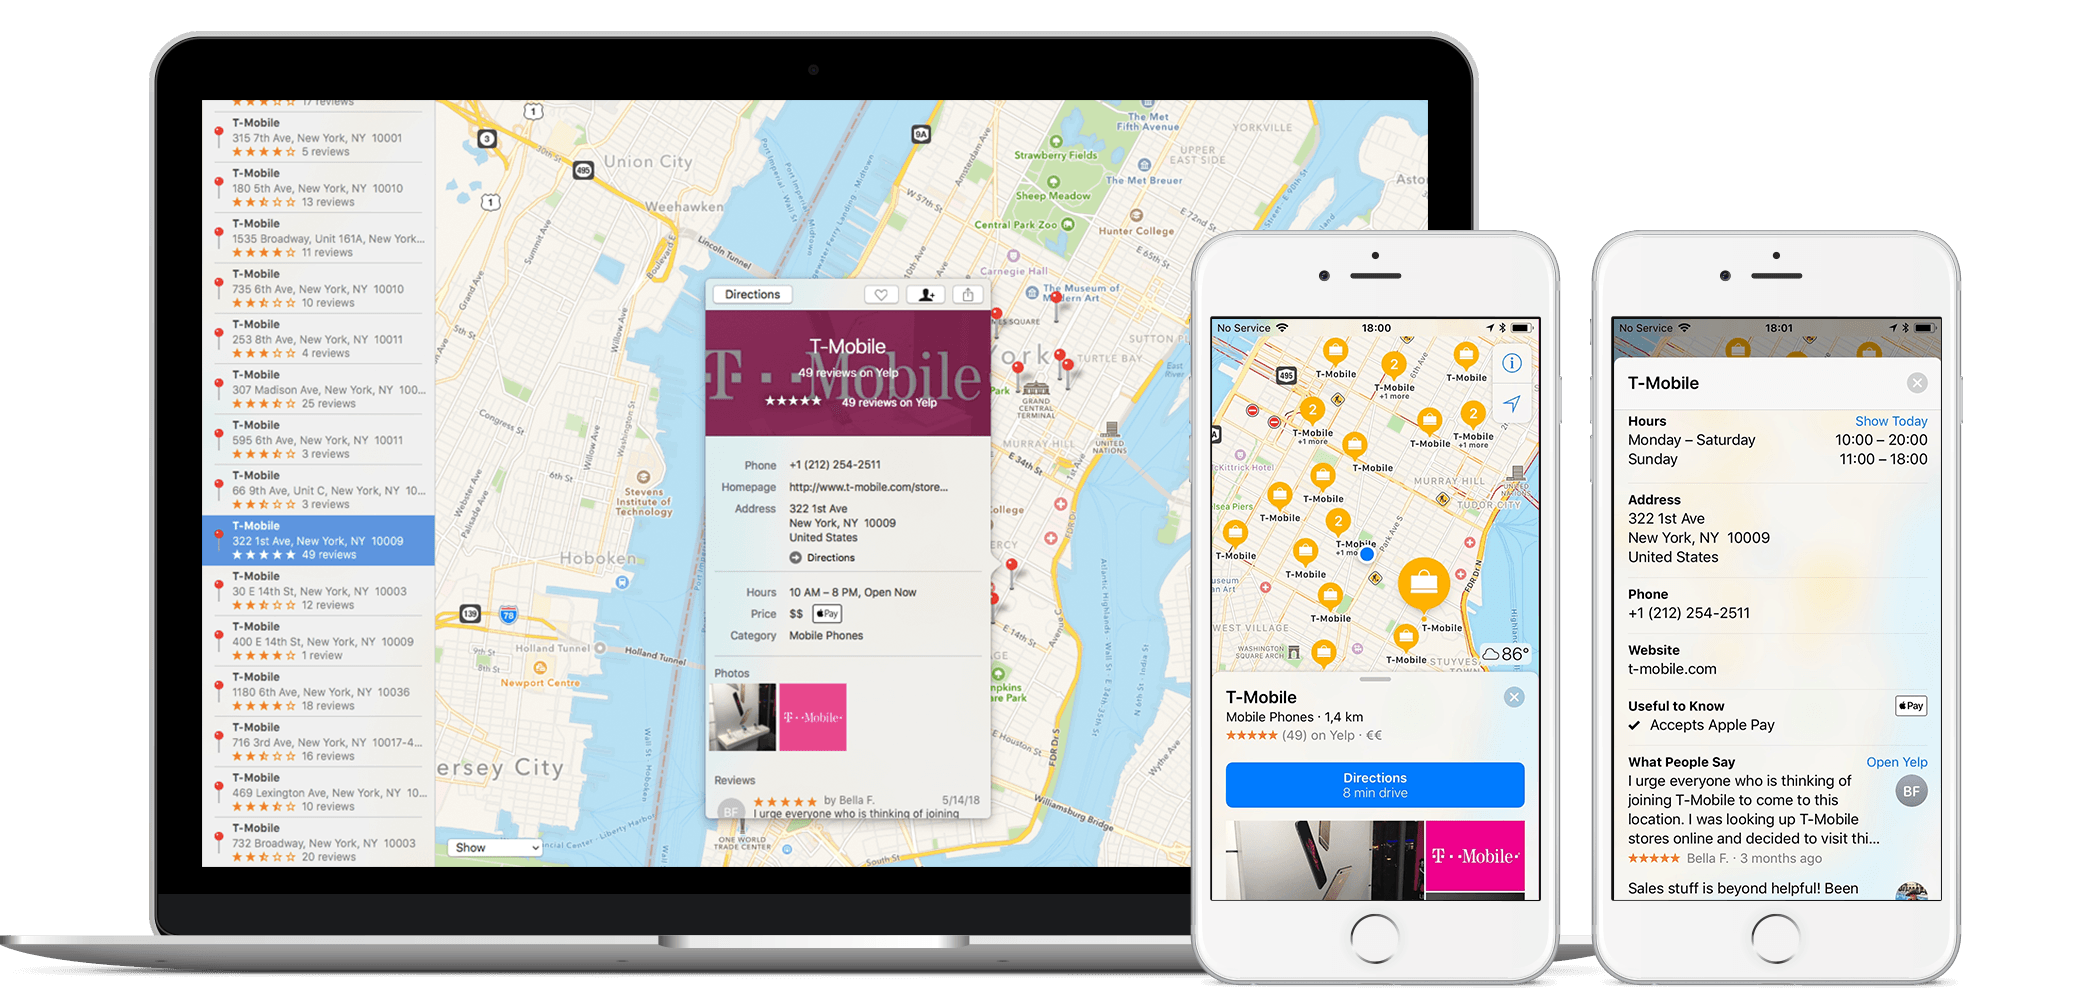 Apple Maps | Update Your Apple Maps Business Listings - Yext